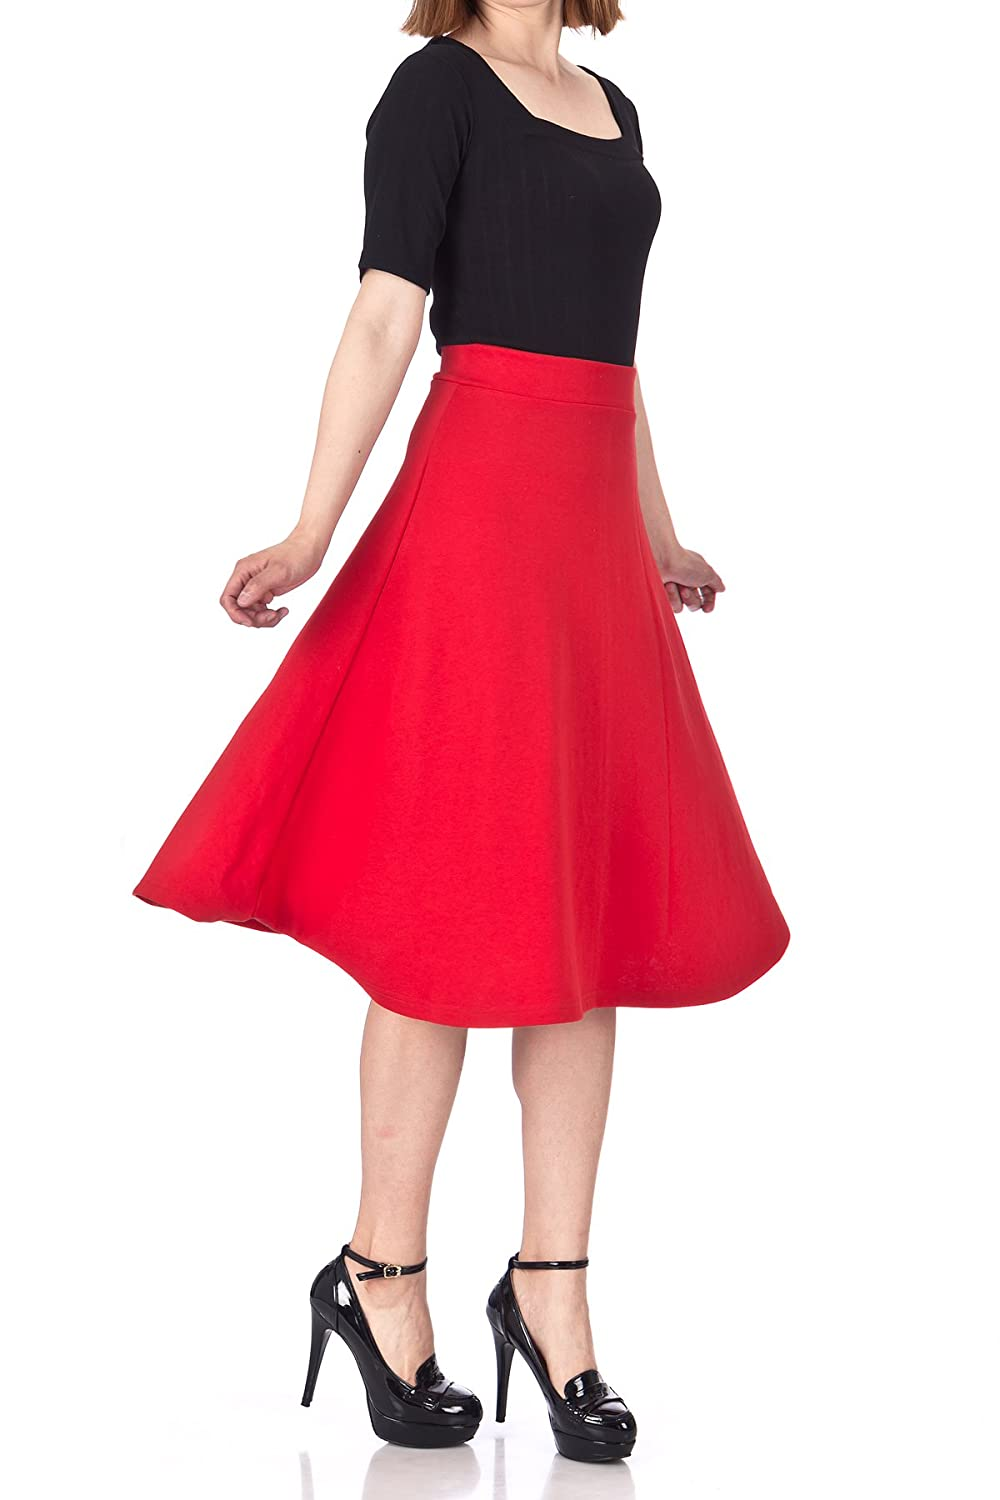 Dani's Choice Everyday High Waist A-Line Flared Skater Midi Skirt SN16-02-001